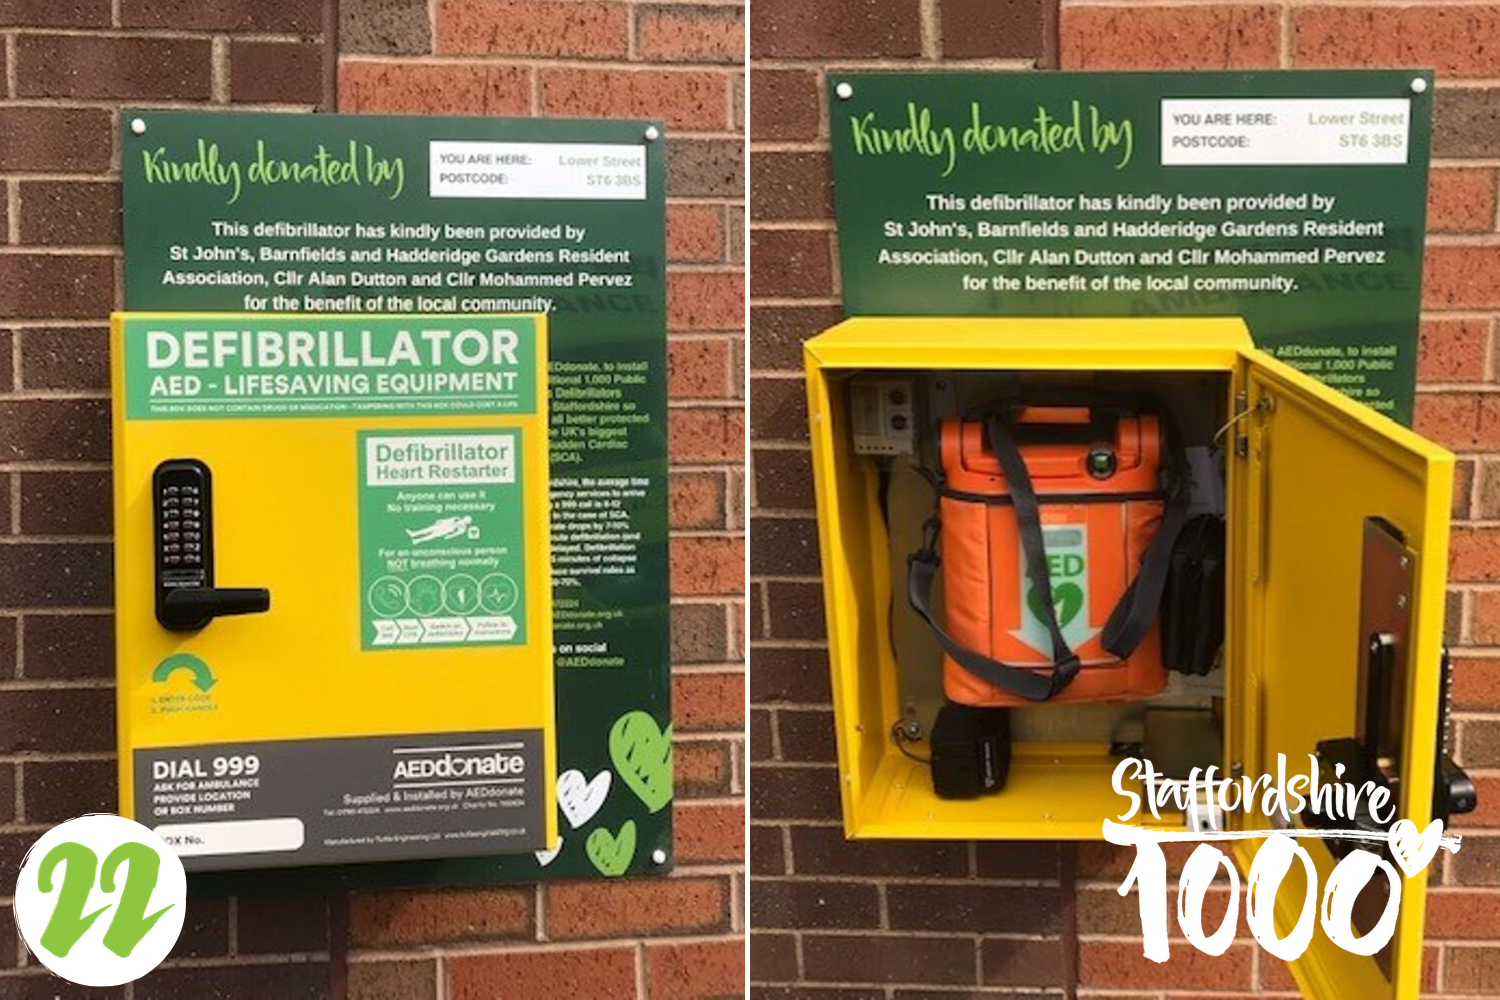 A new defibrillator site has gone live in Burslem